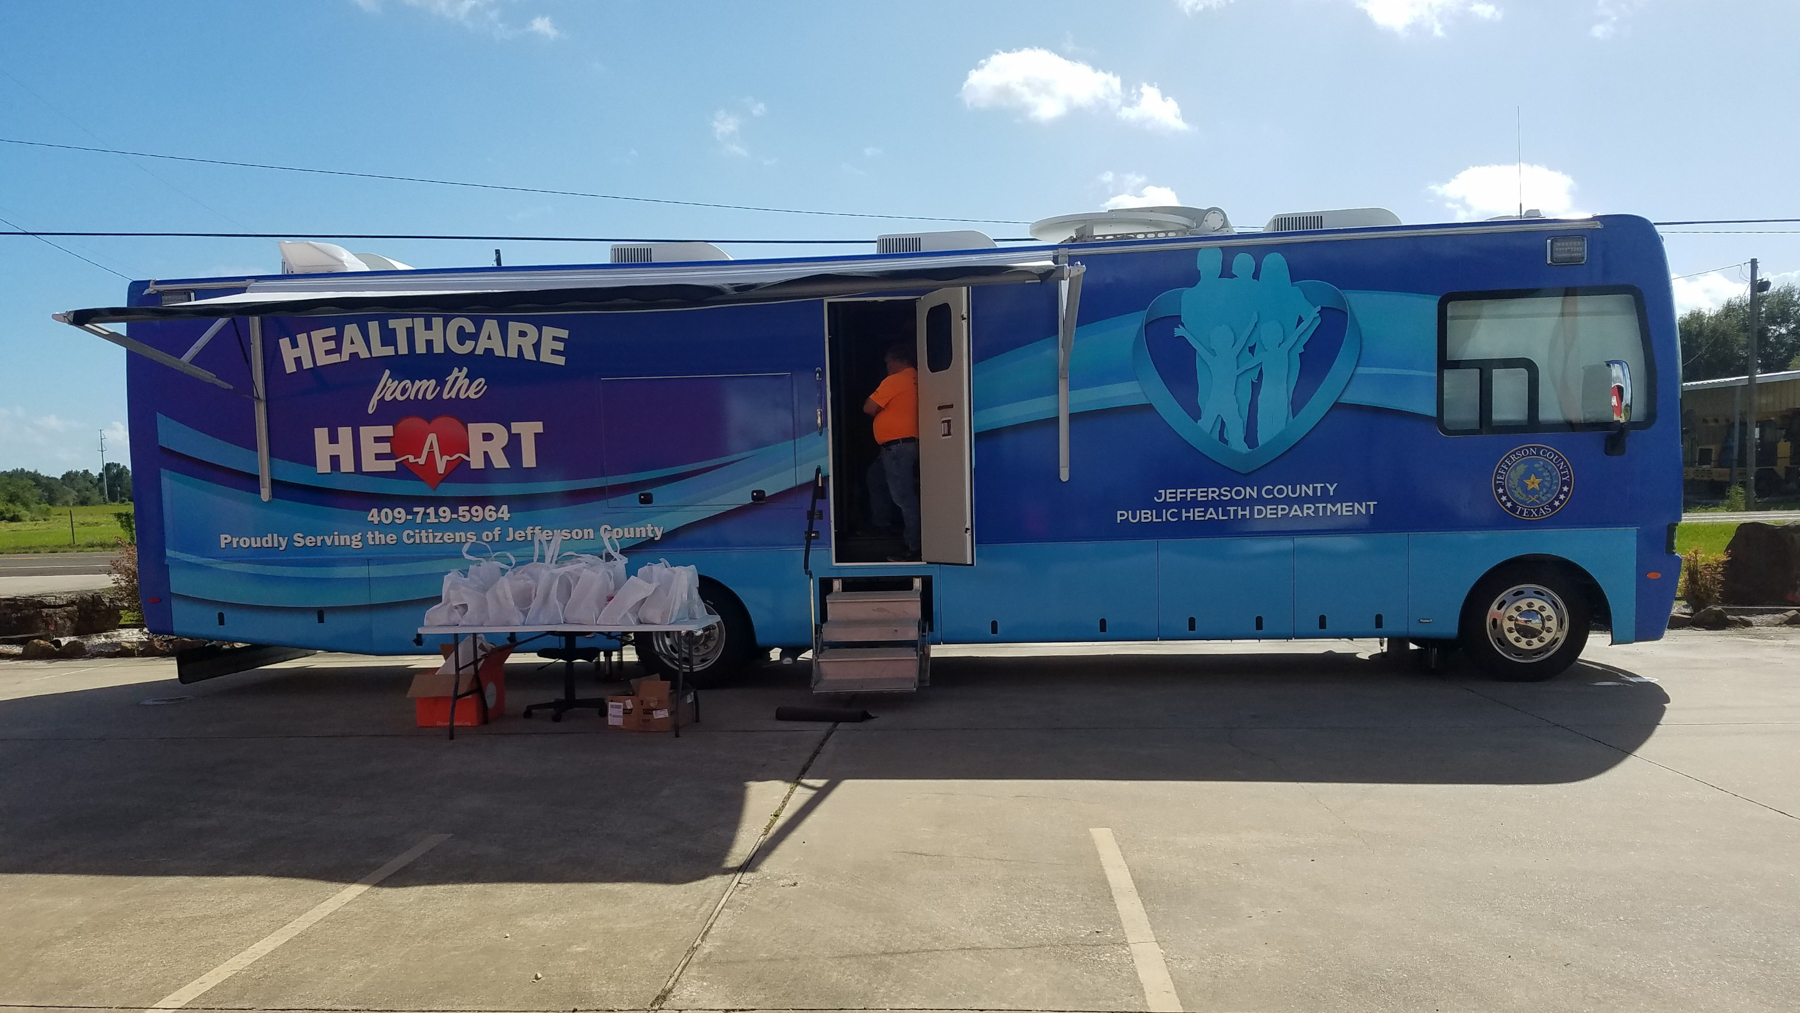 Jefferson County's mobile unit, donated by Direct Relief after Hurricane Harvey, is able to deploy to areas of the East Texas community with limited access to health services, and was recently used after a chemical explosion rocked the Port Neches area. (Photo courtesy of the Jefferson County Public Health Department)